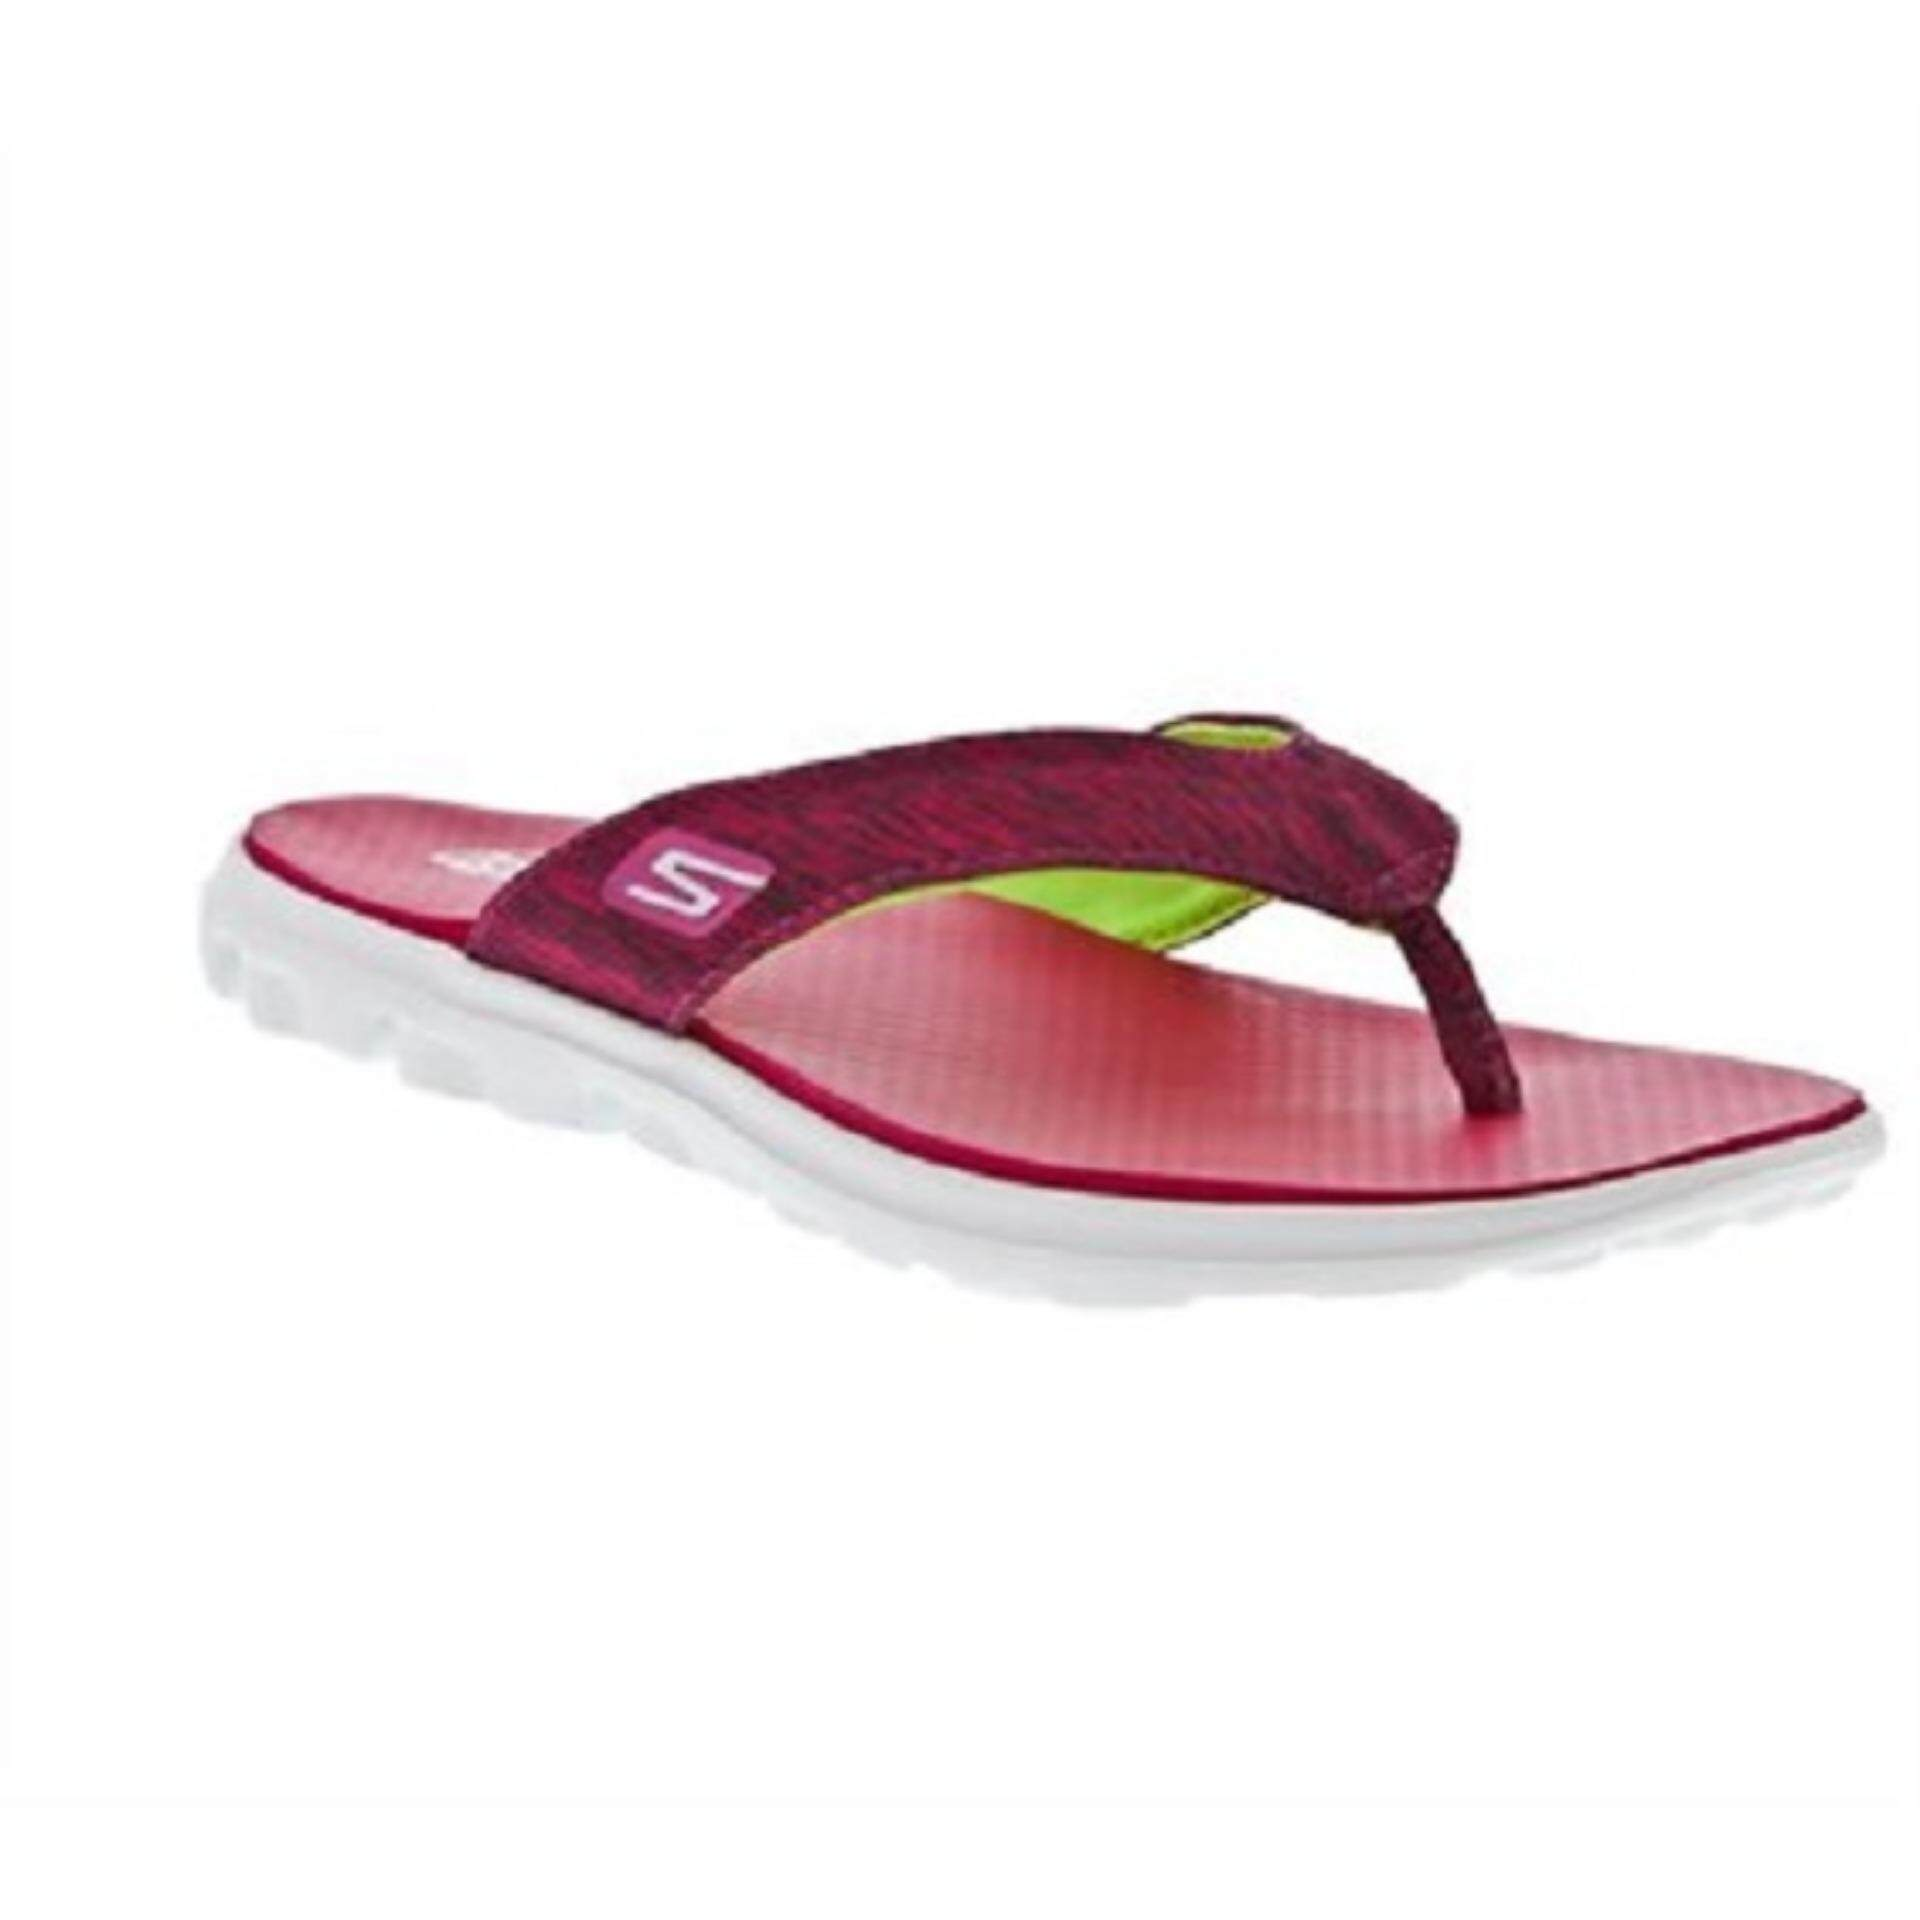 skechers goga mat sandals Sale,up to 74